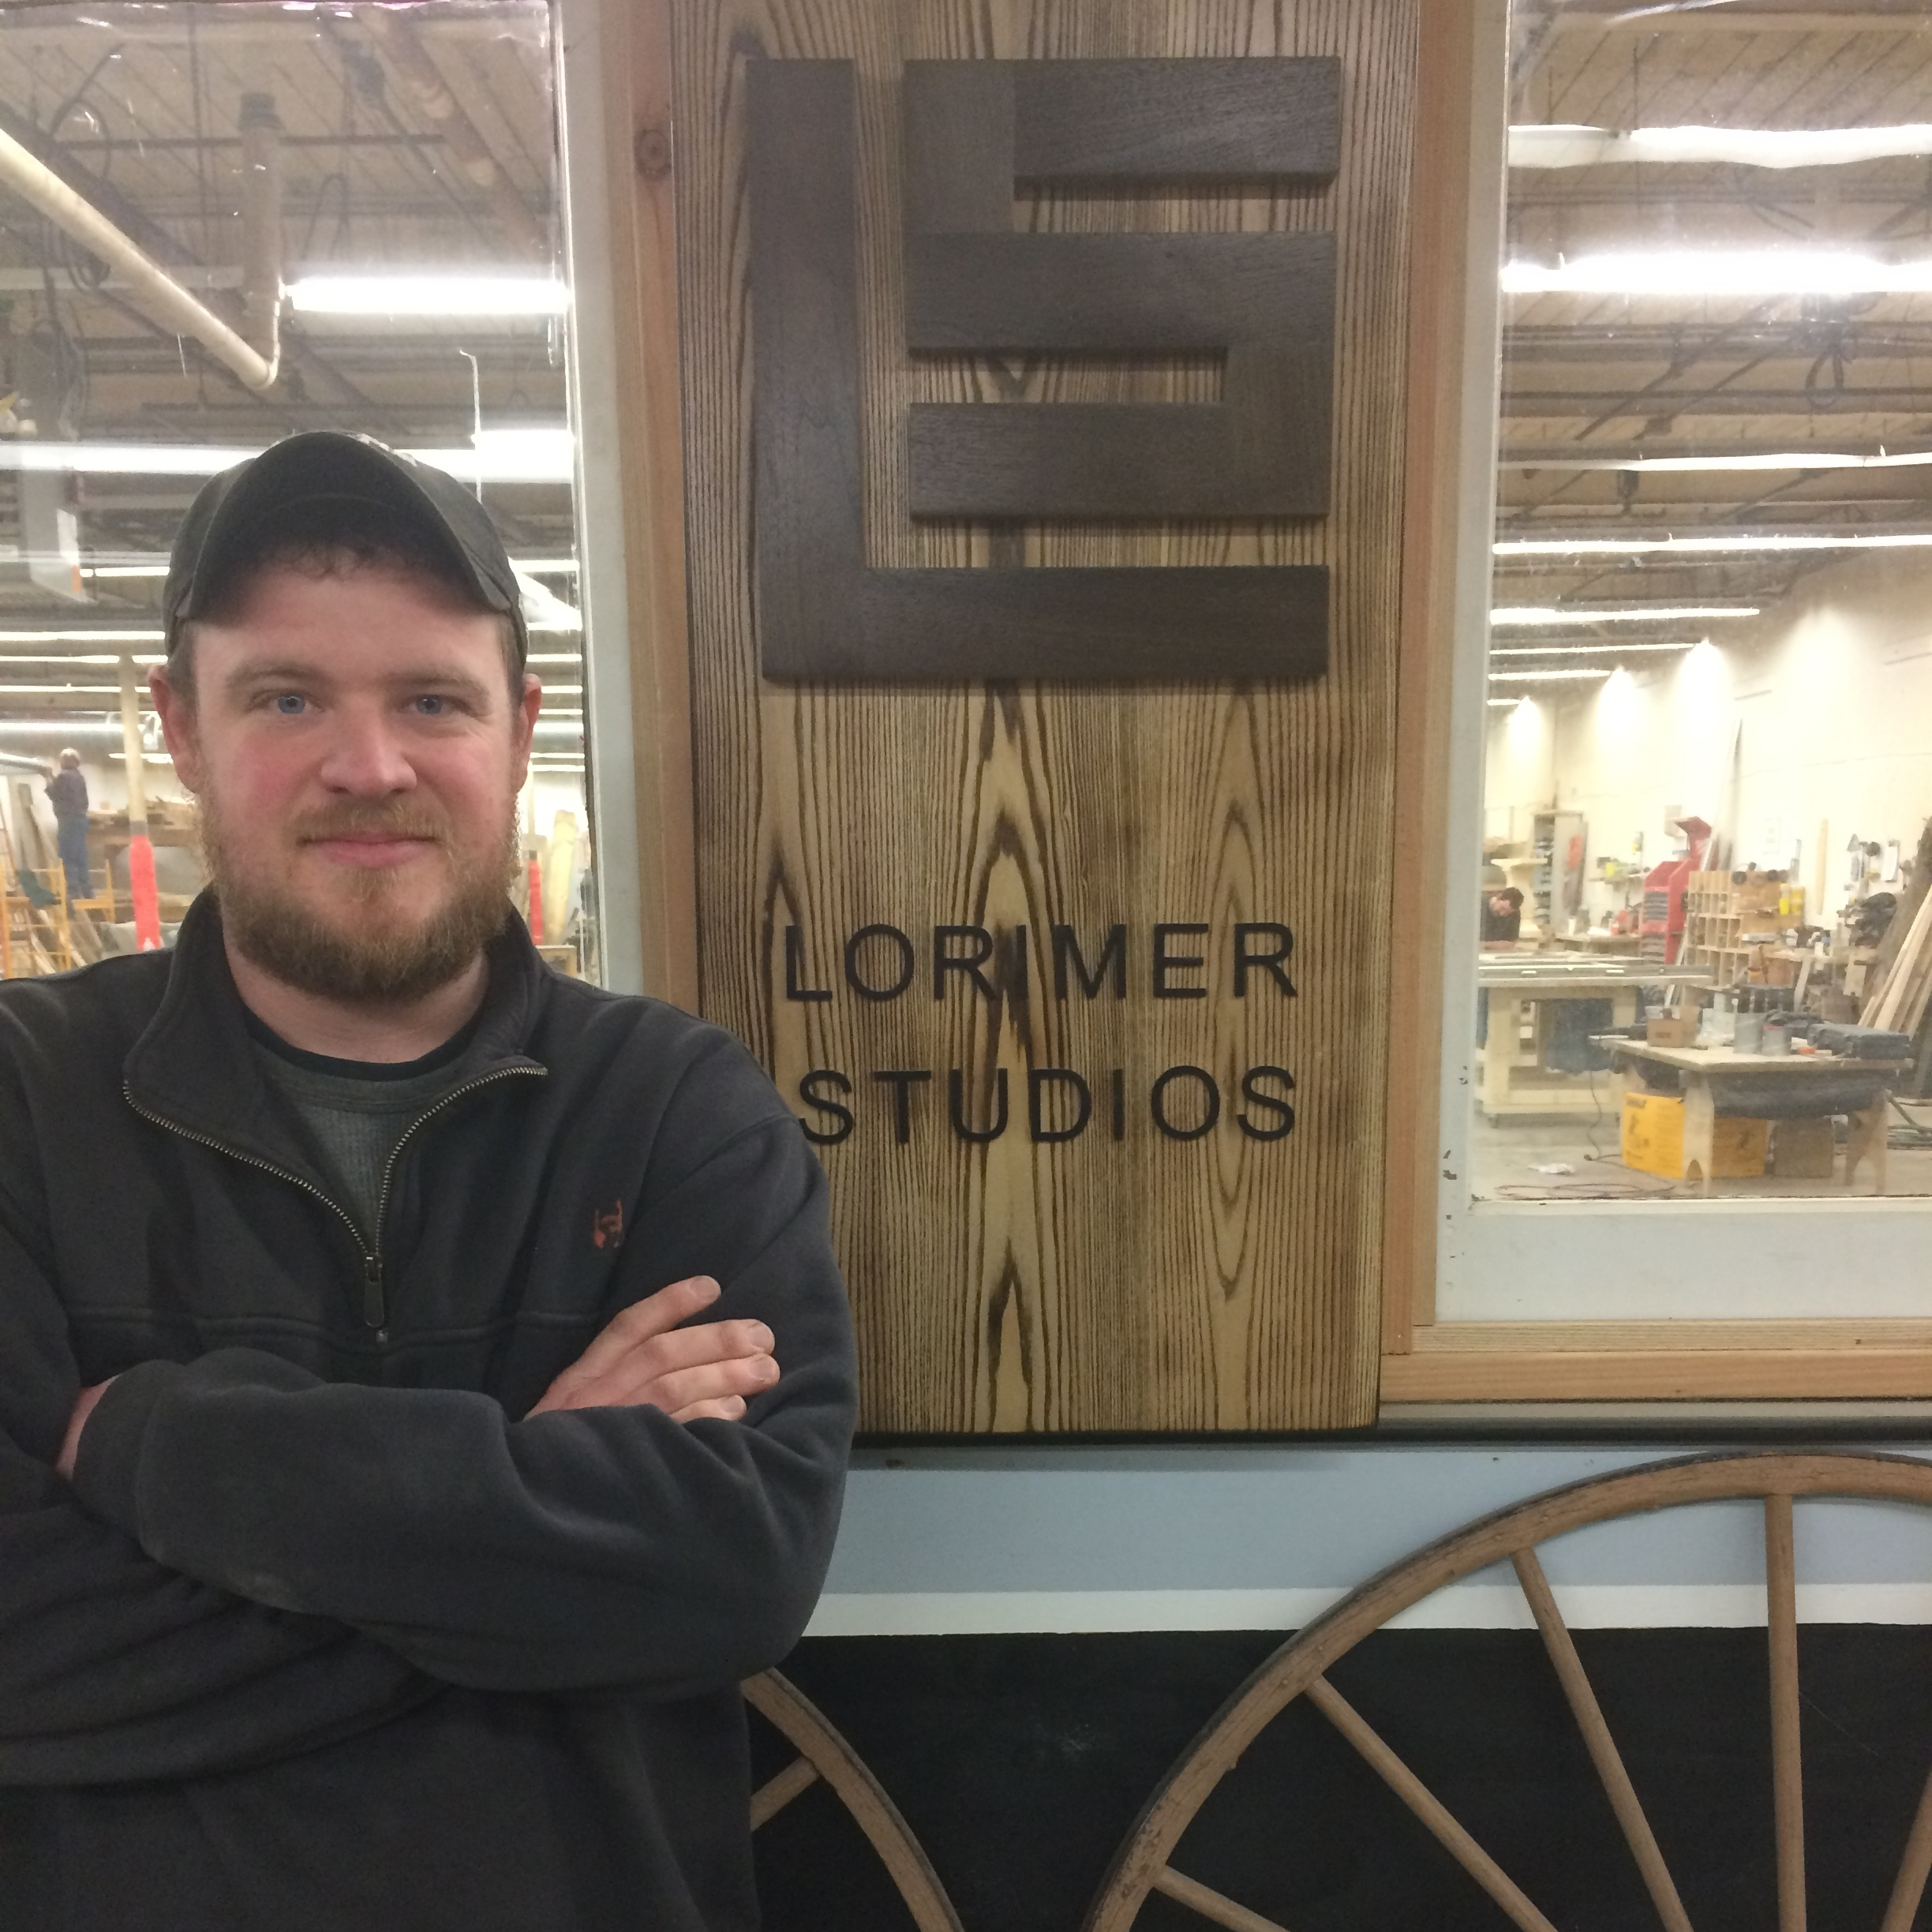 Ben   The son of a master craftsman, Ben grew up with a passion for woodworking. He has a talent for drawing, design, and architectural thinking. In his spare time, he enjoys playing hockey and guitar.